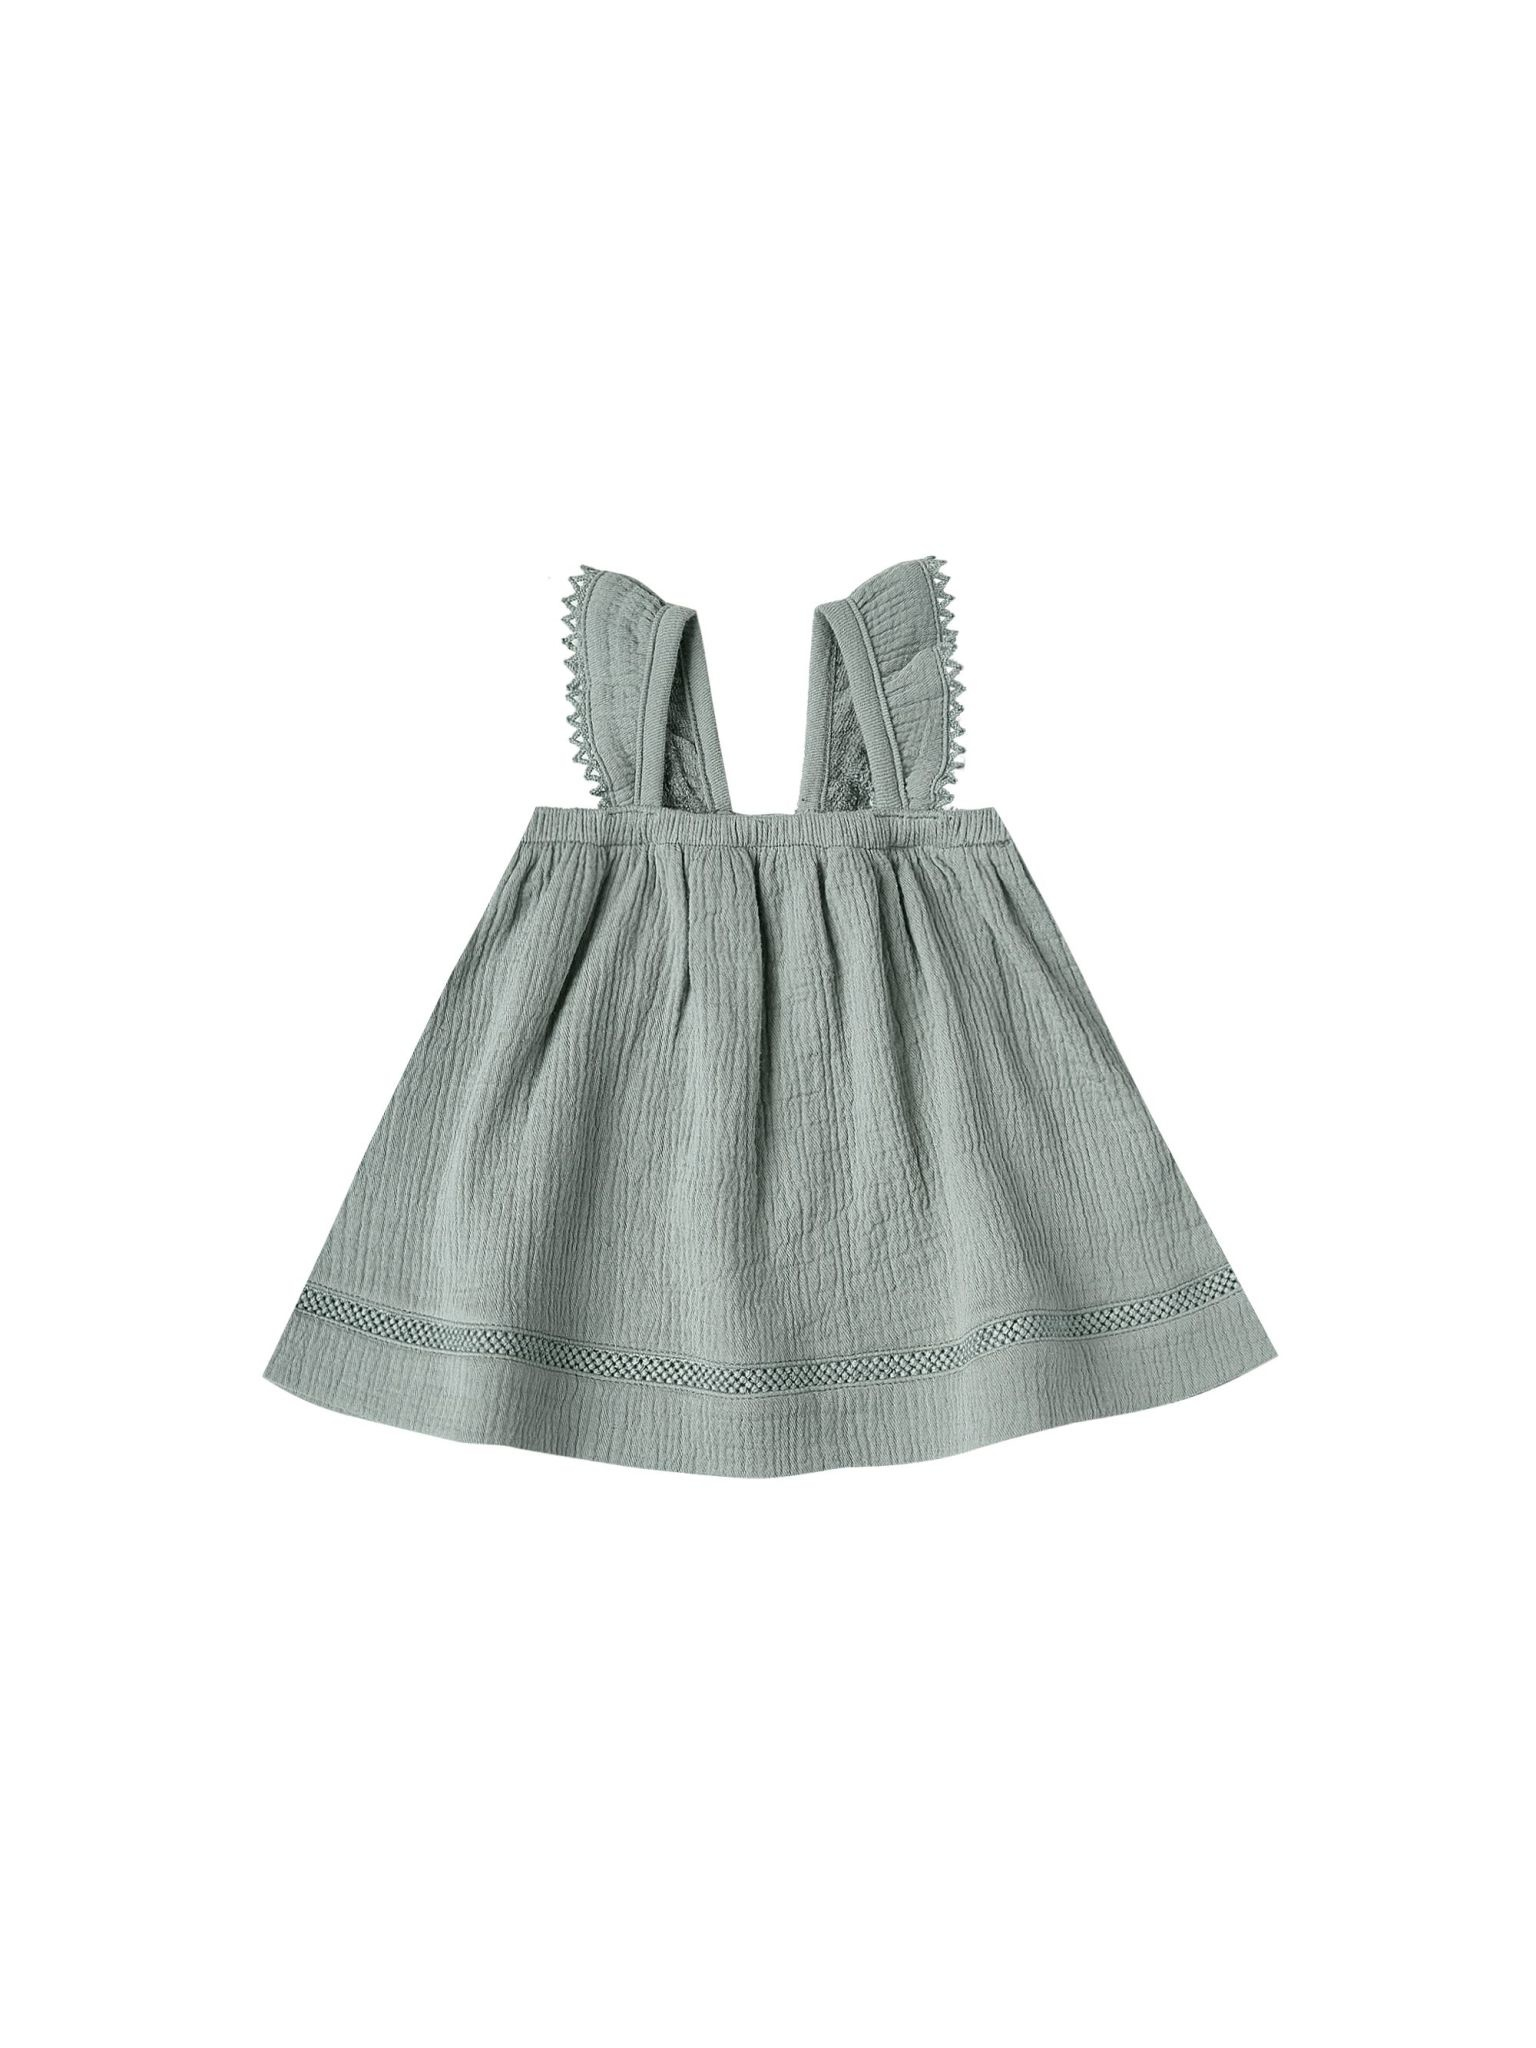 QUINCY MAE Organic Cotton Ruffled Tube Dress